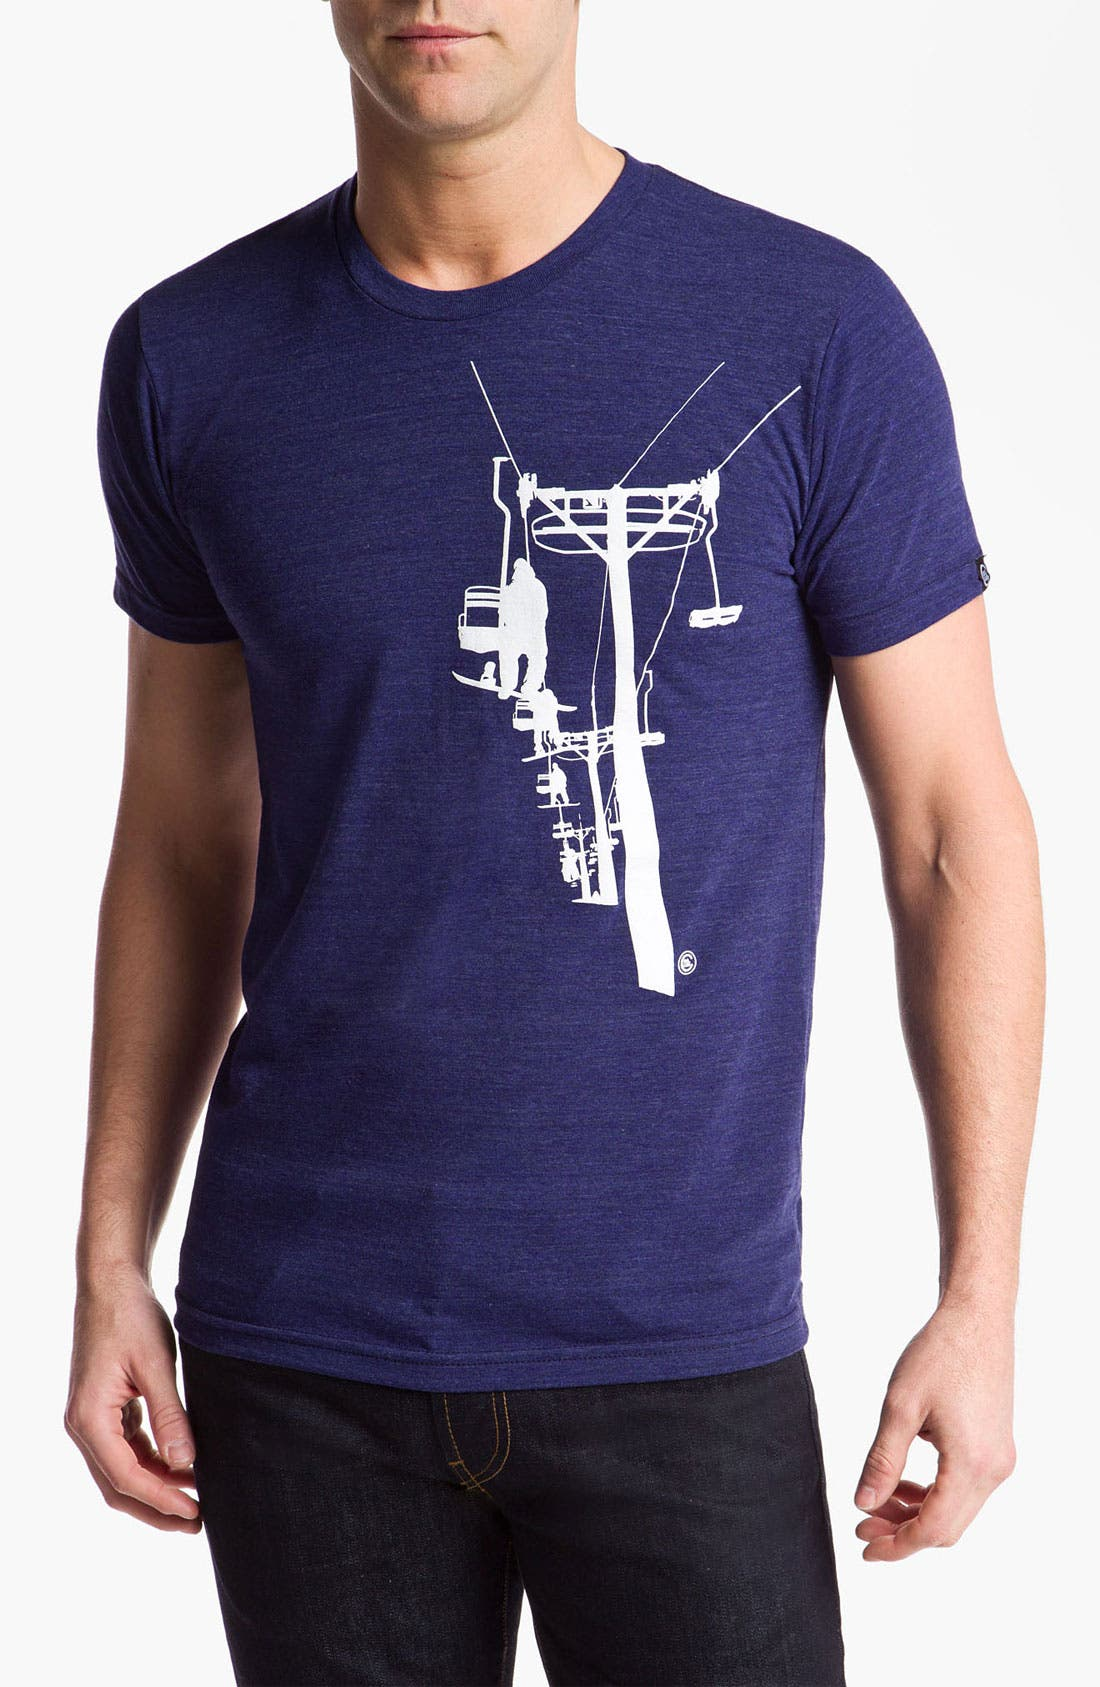 Main Image - Casual Industrees 'Chairlift' T-Shirt